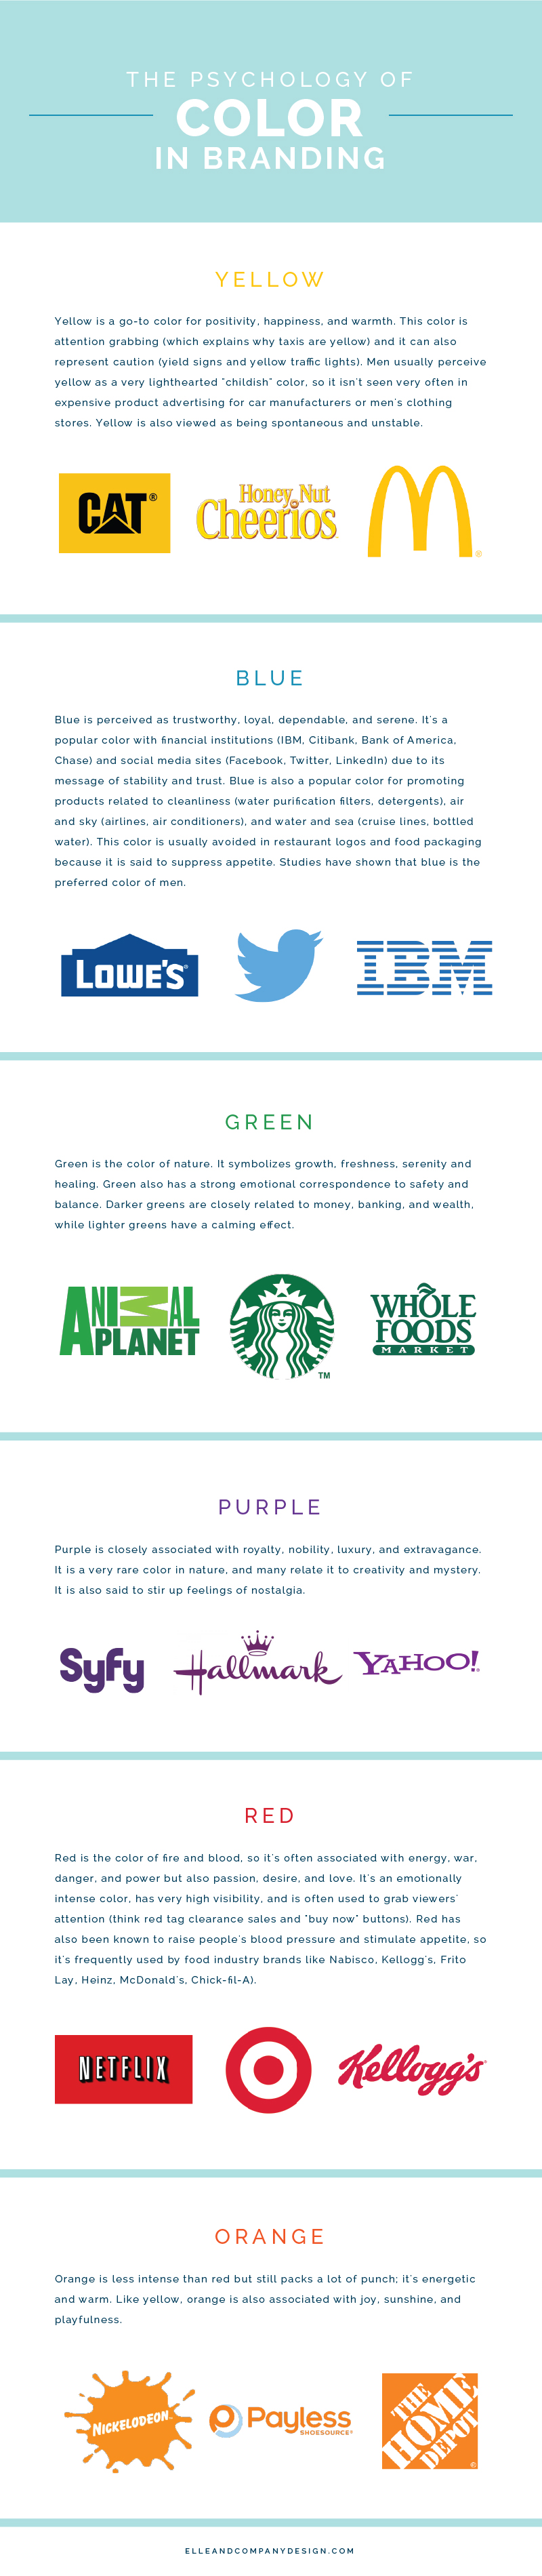 The Psychology of Color in Branding - Elle & Company